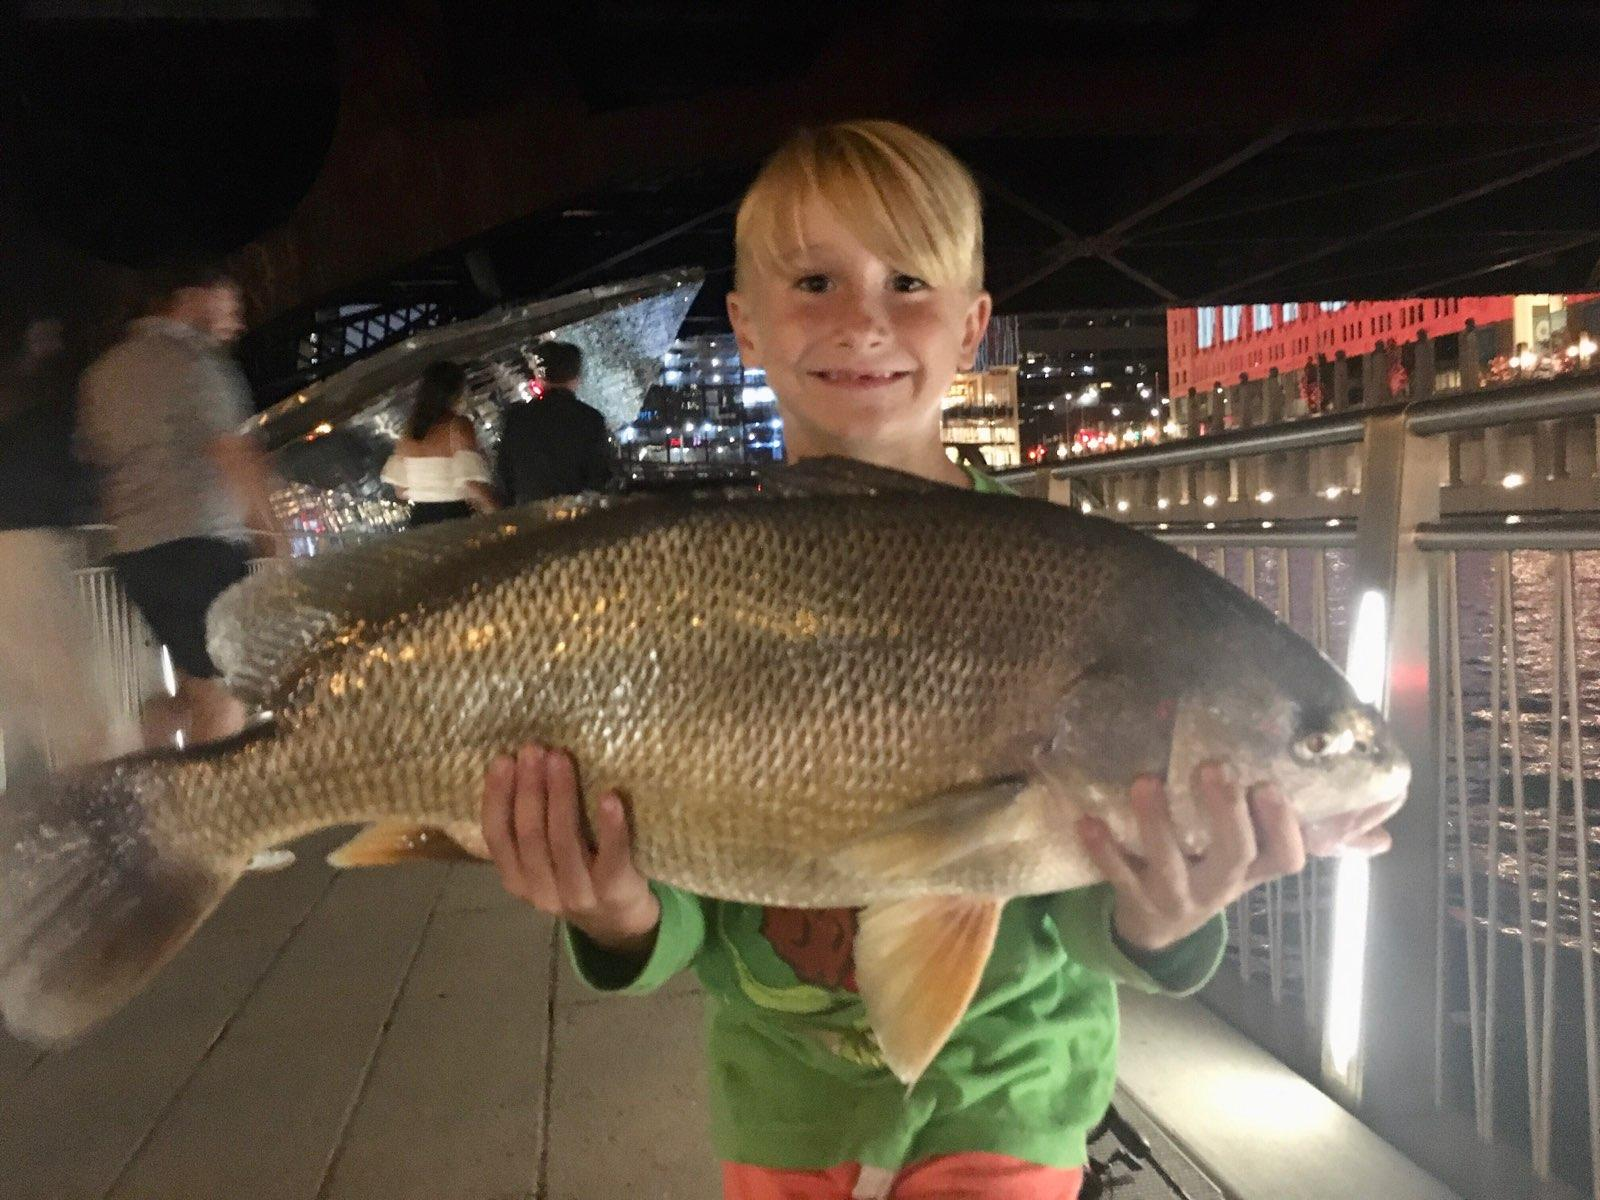 Jack Caunter, 7, his big freshwater drum caught and released on the Chicago River downtown. Provided photo